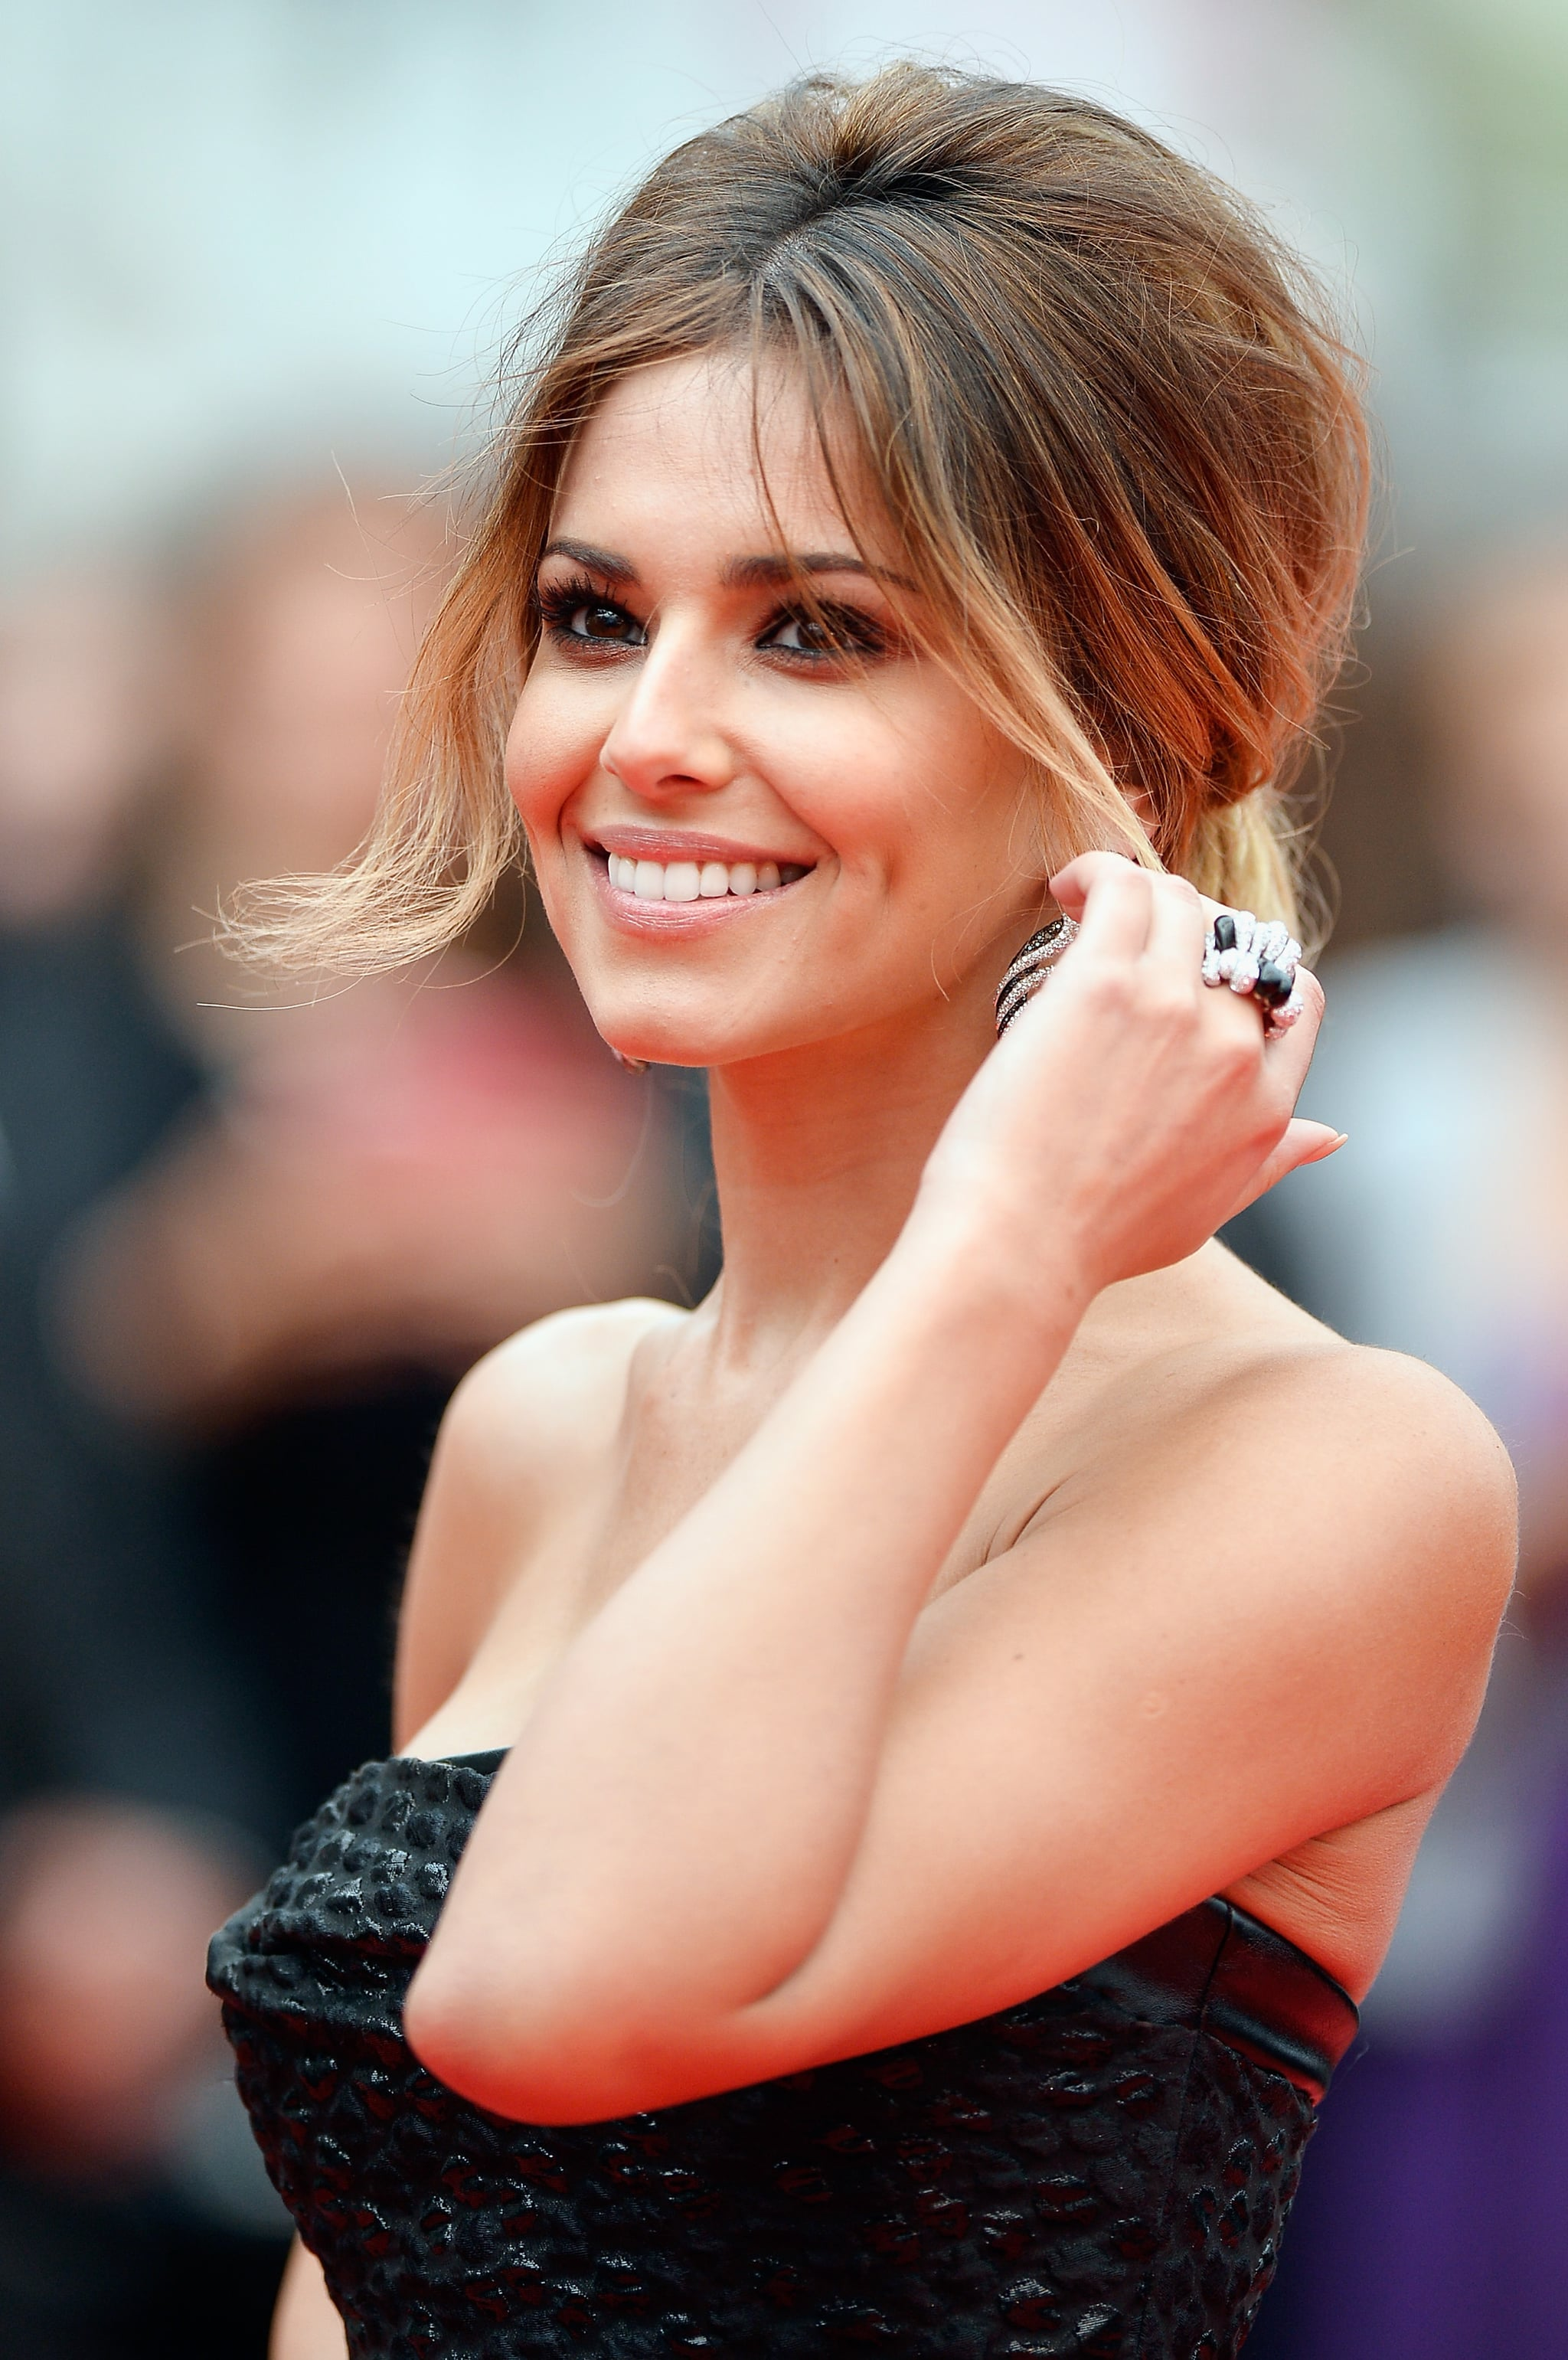 Cheryl Cole at the Cannes Film Festival | Cheryl Cole's ... Cheryl Cole